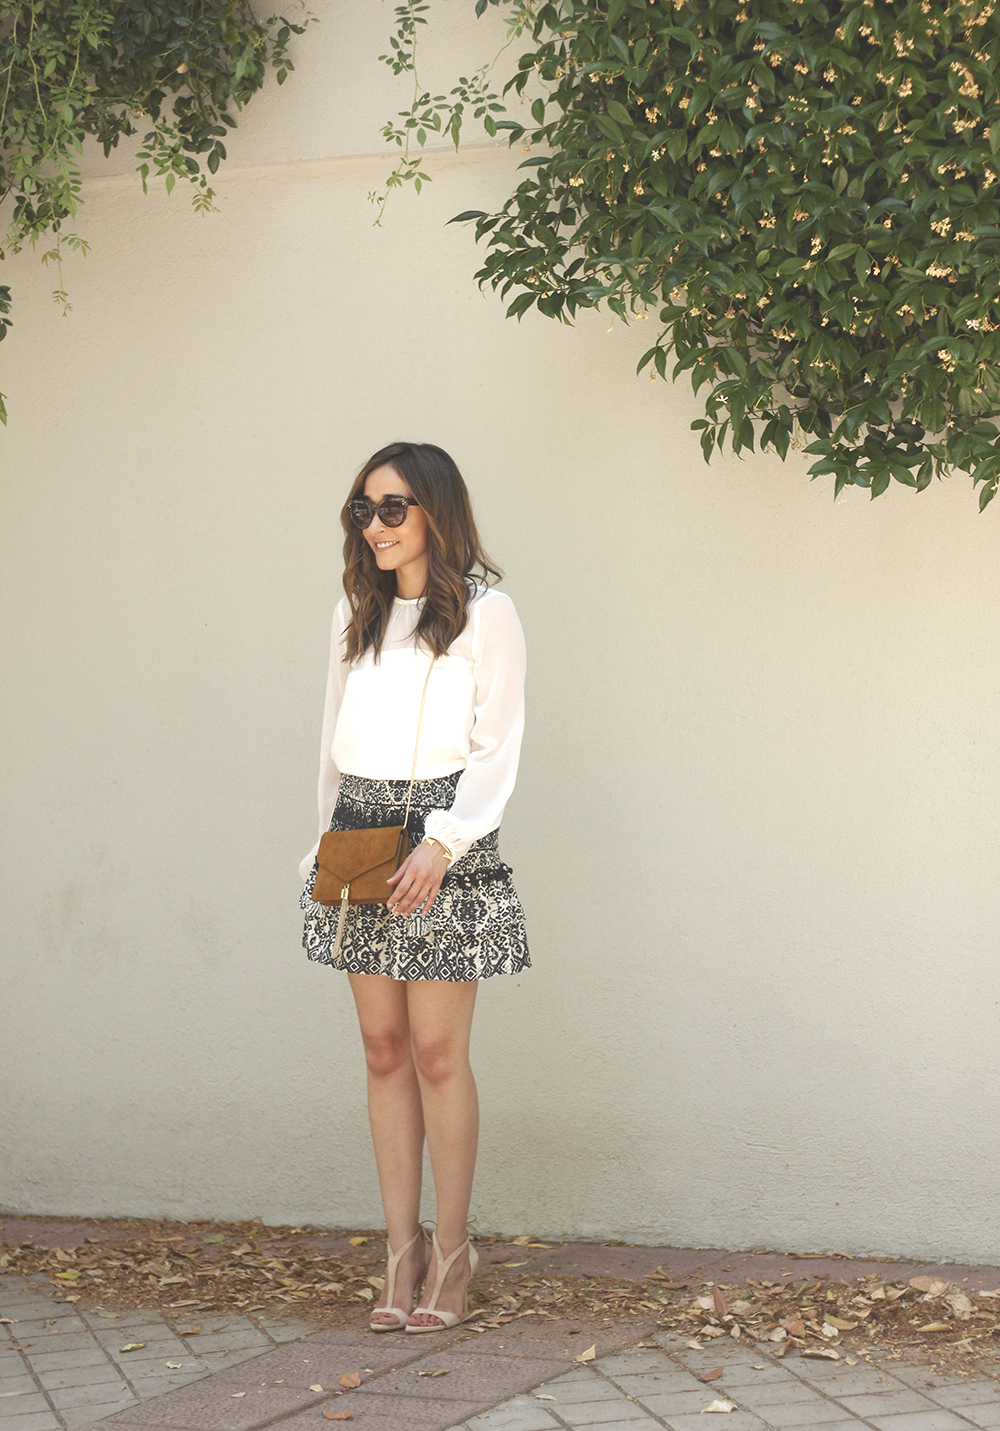 Green sumer skirt with white blouse heels fashion outfit style09